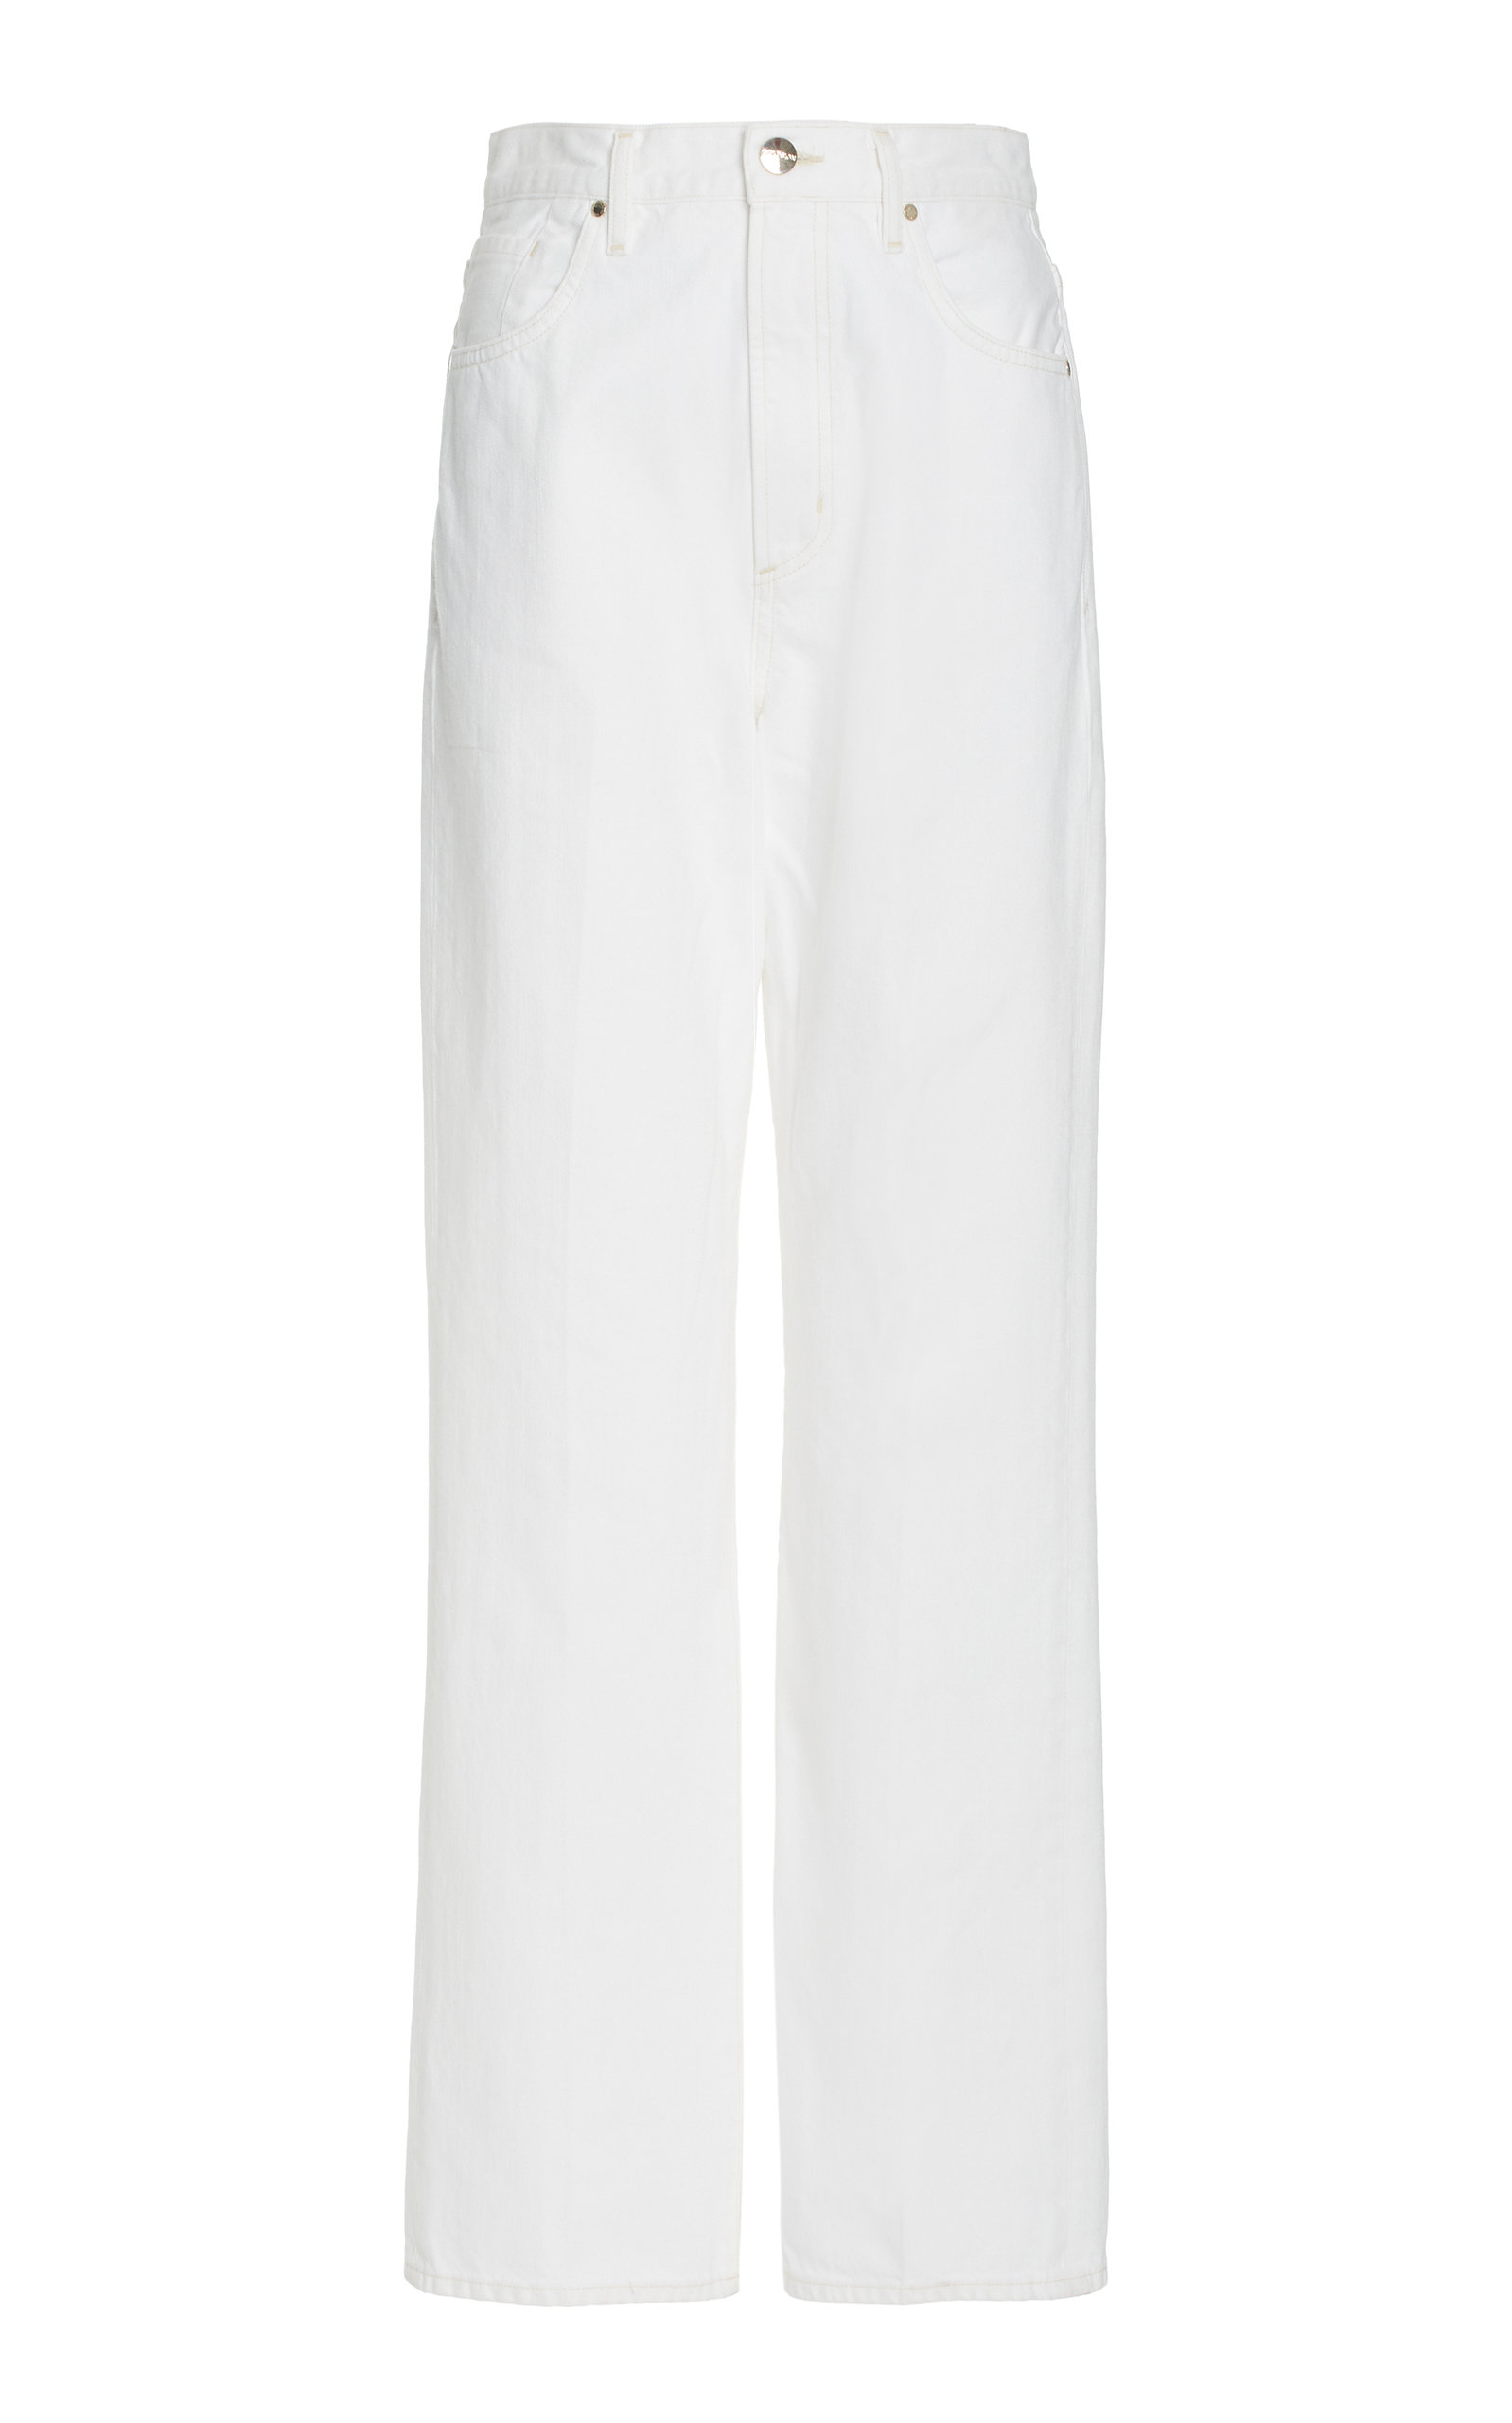 Women's The Curved Rigid High-Rise Straight-Leg Jeans